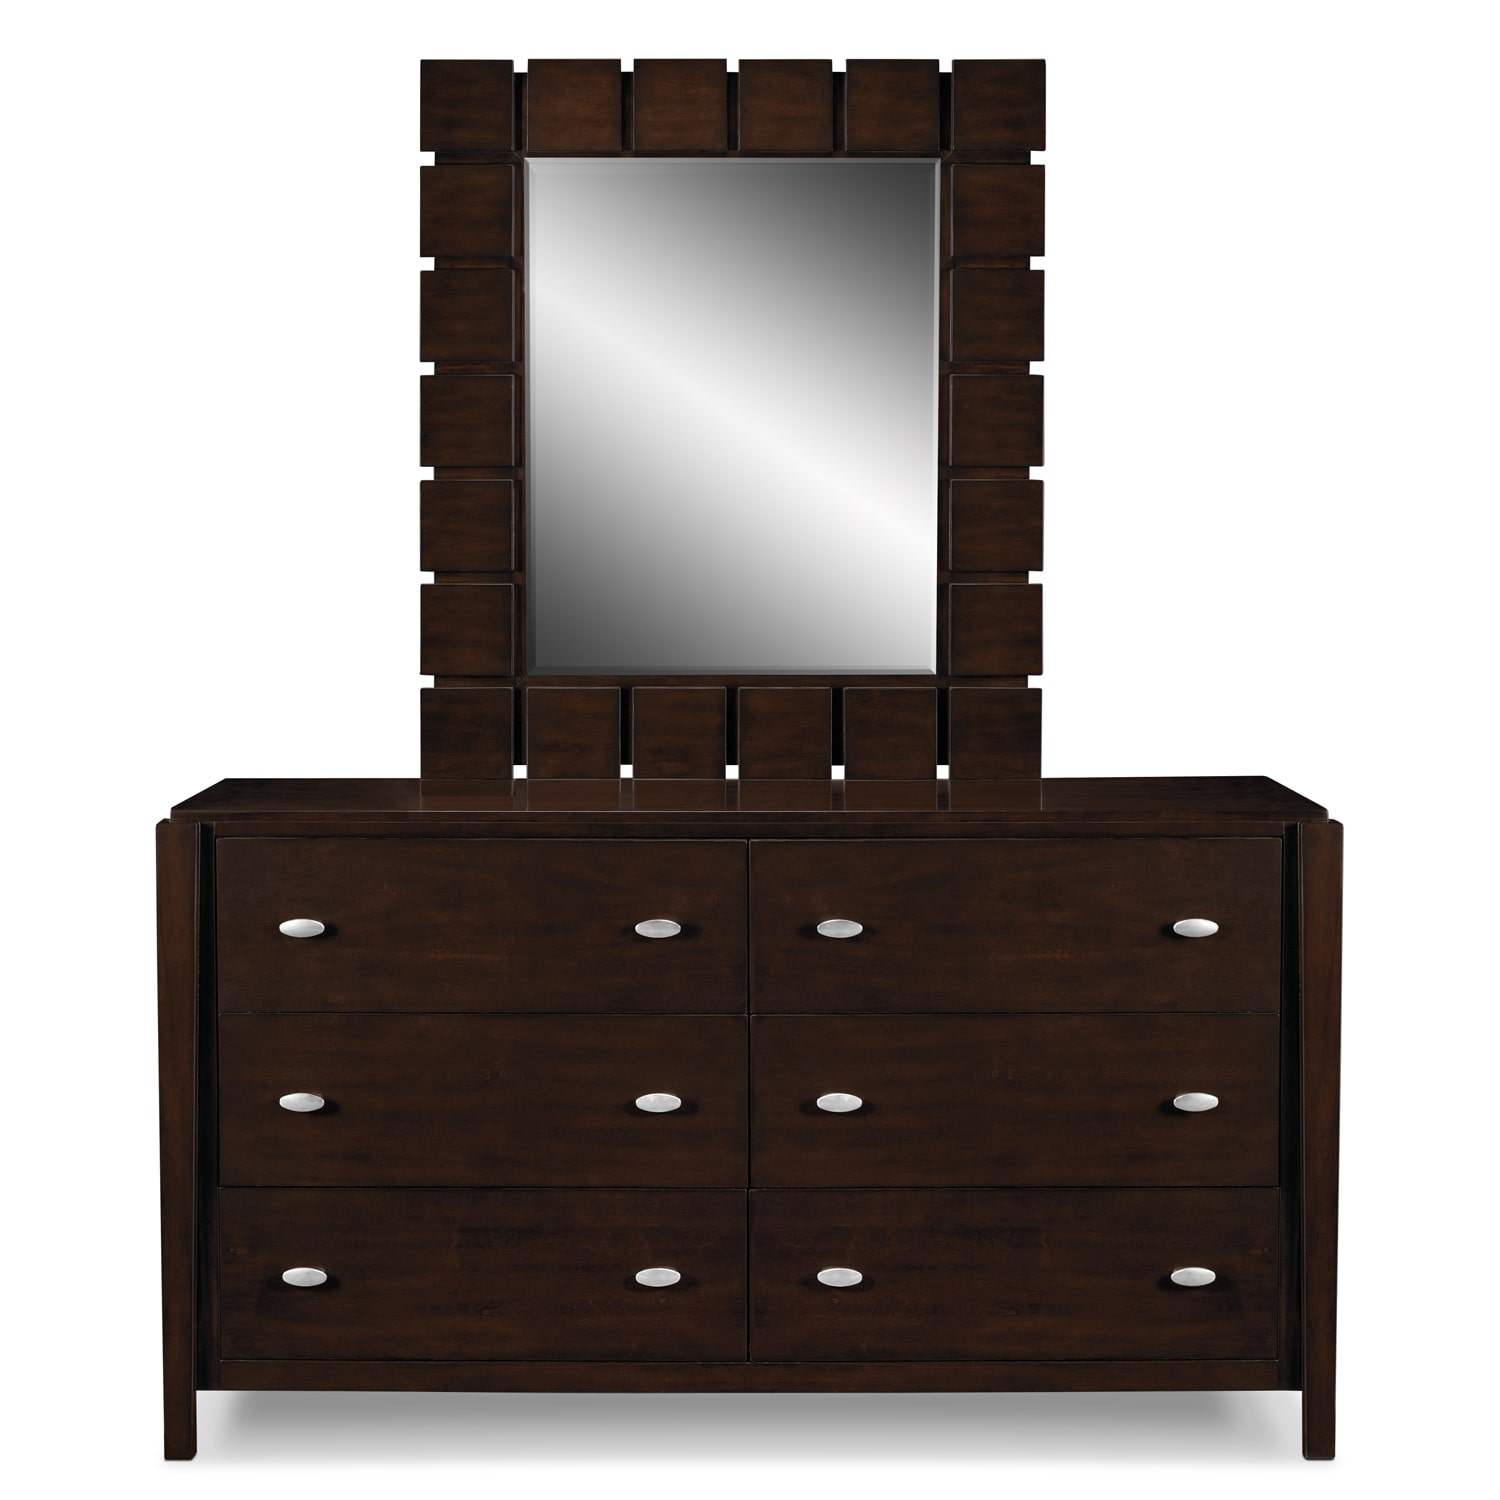 mosaic dresser mirror by factory outlet bedroom furniture bedroom mirrored furniture dresser